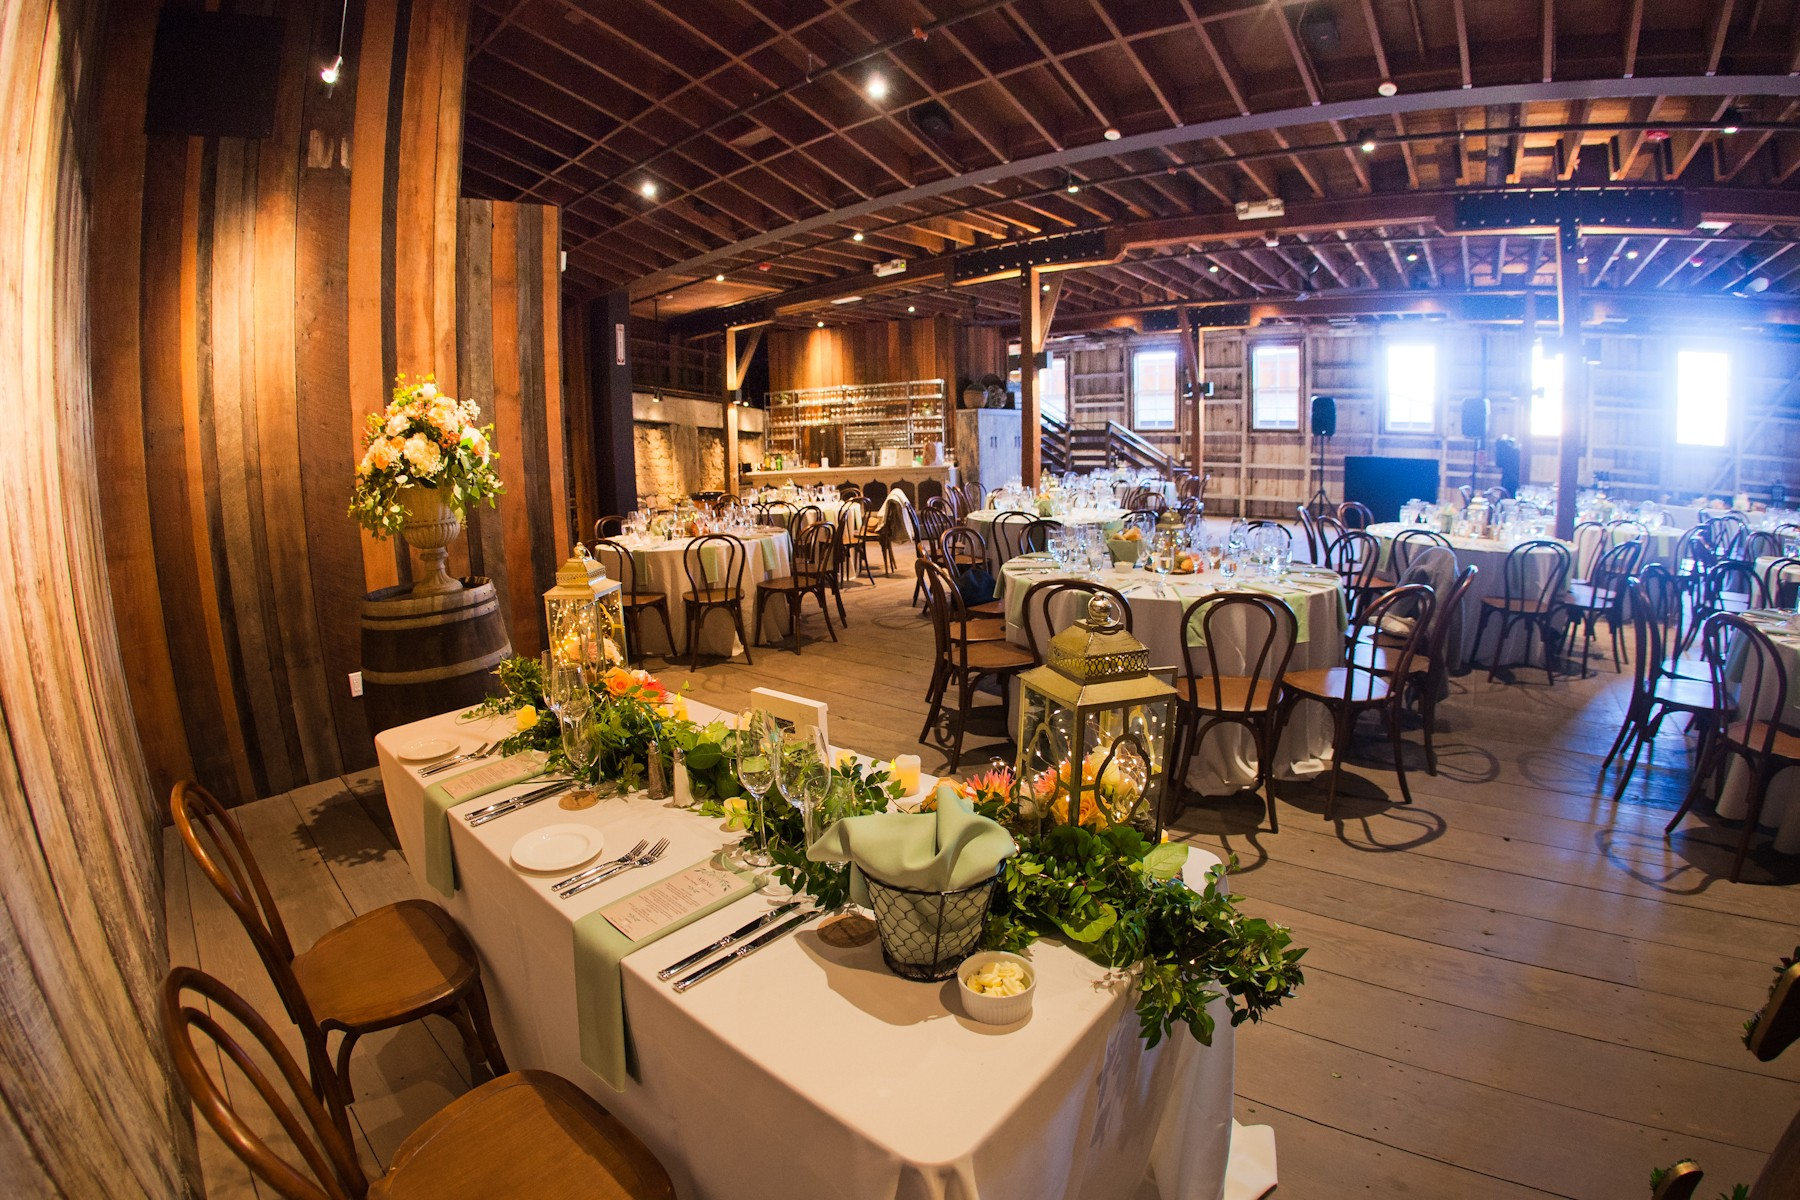 Cooper Molera Barns Dinner Set up Option